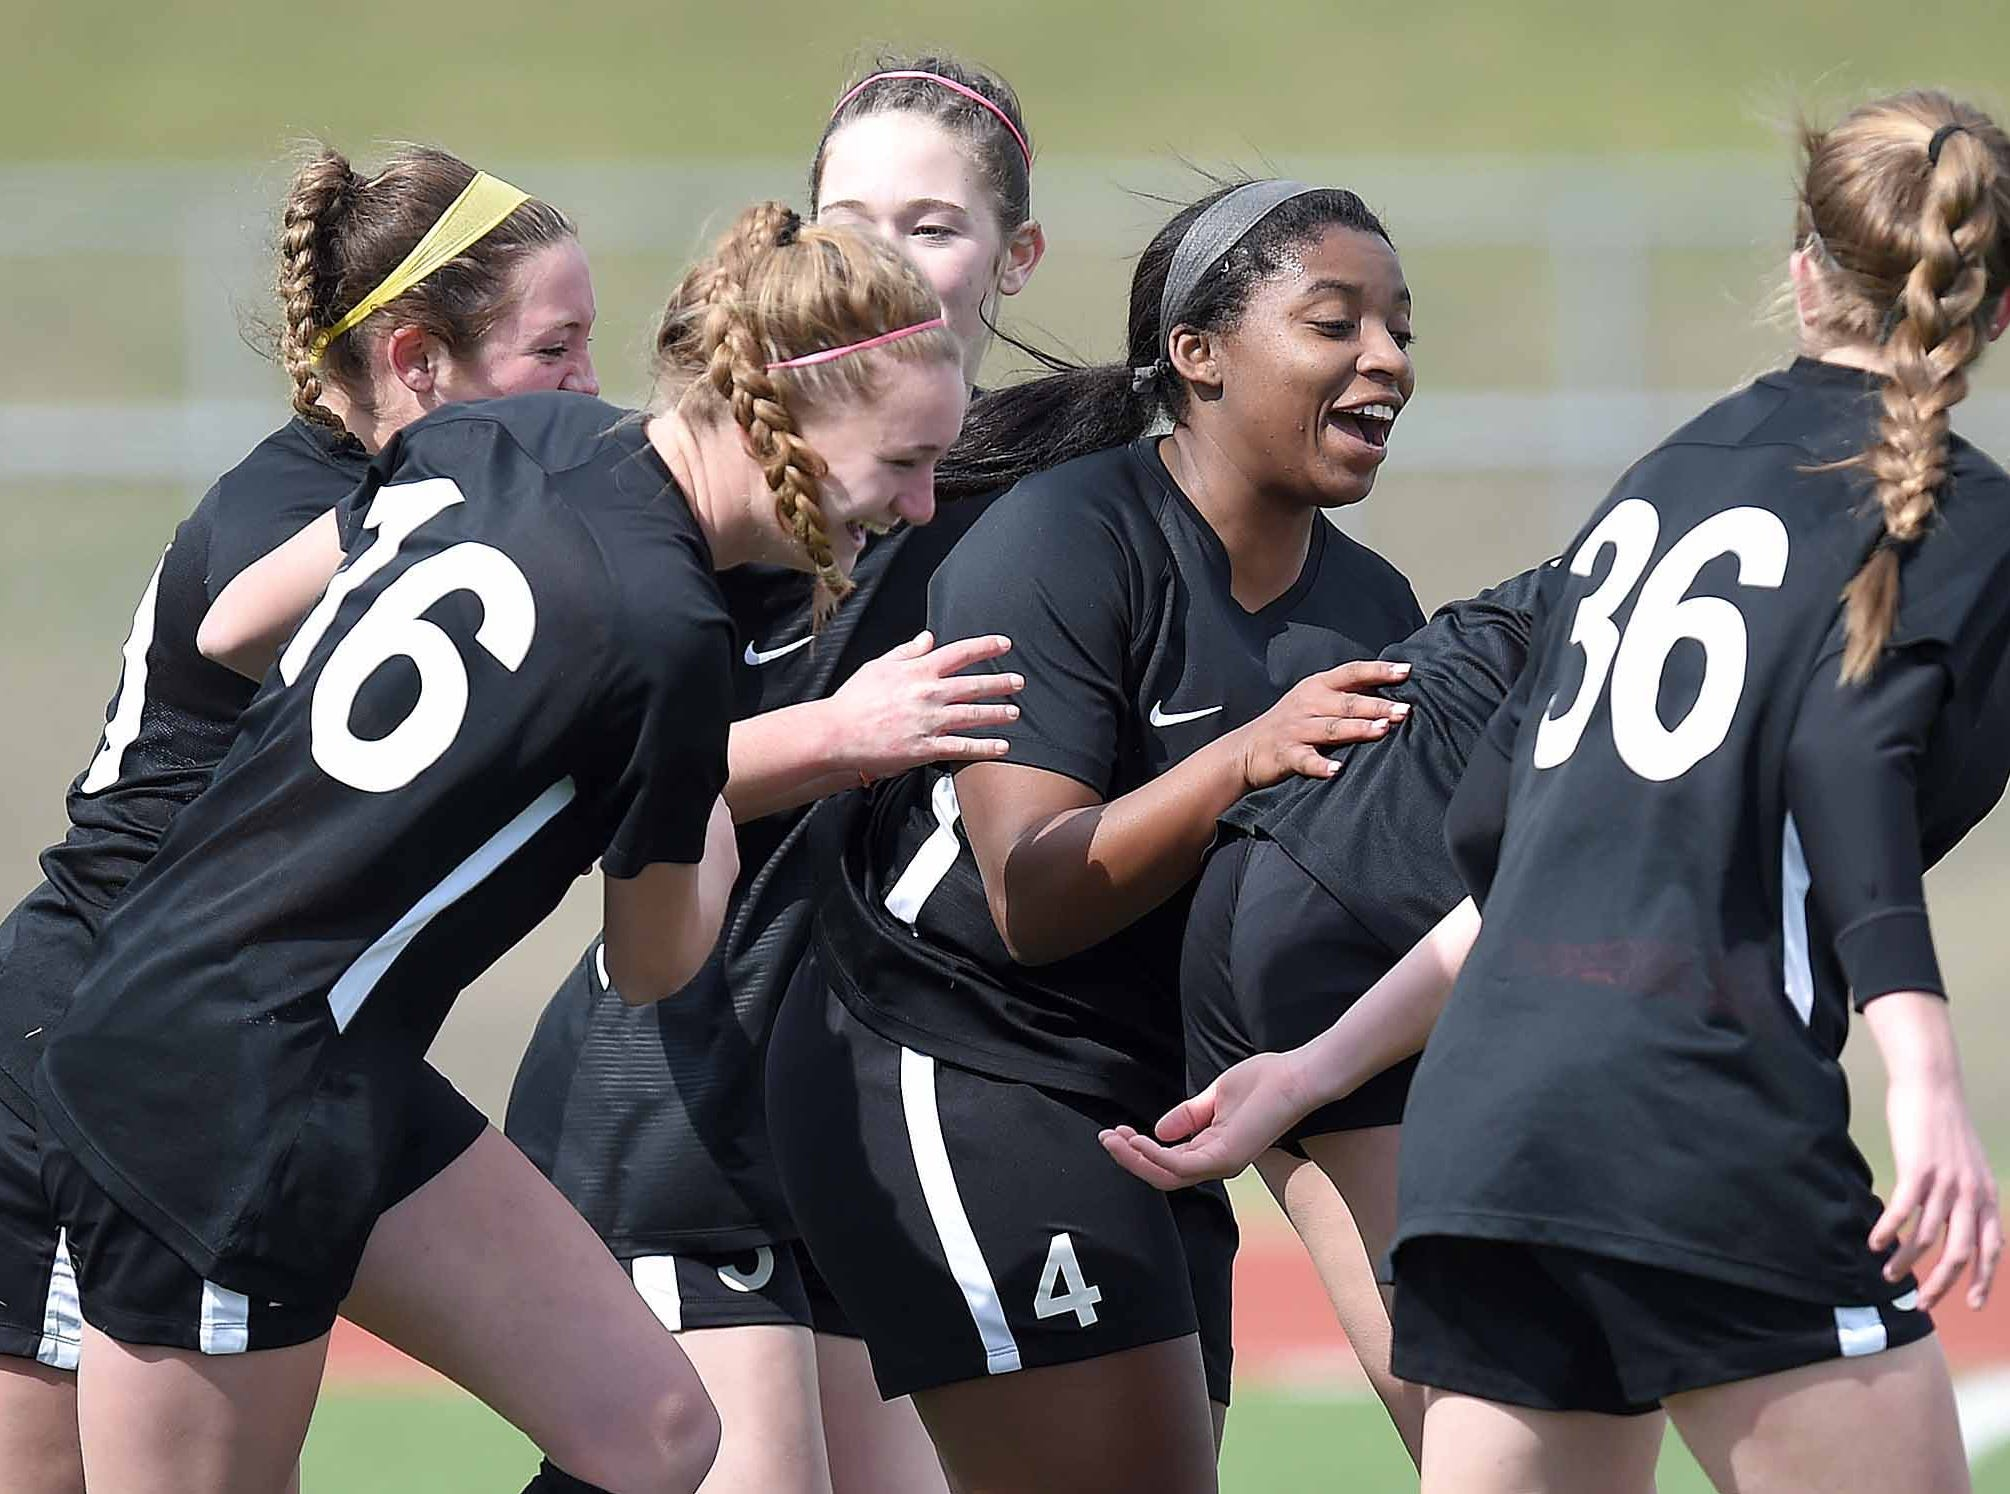 The West Lauderdale Lady Knights celebrate a goal against Florence in the Class 4A state championship in the MHSAA BlueCross Blue Shield of Mississippi Soccer Classic on Saturday, February 9, 2019, at Ridgeland High School in Ridgeland, Miss.